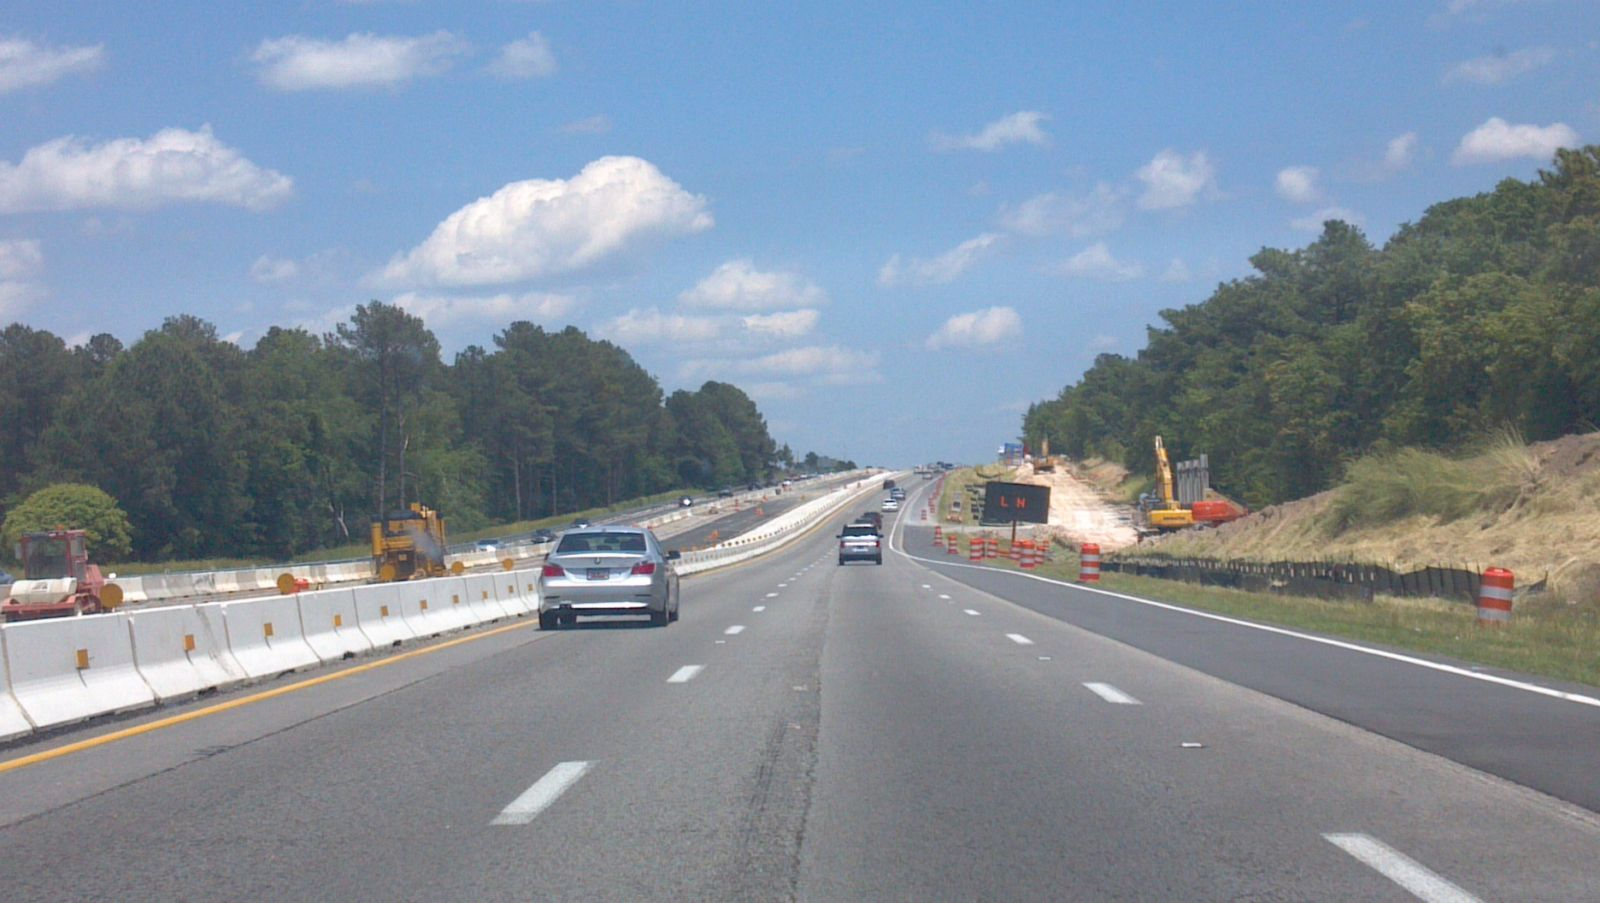 I-20 Widening Project Columbia,SC